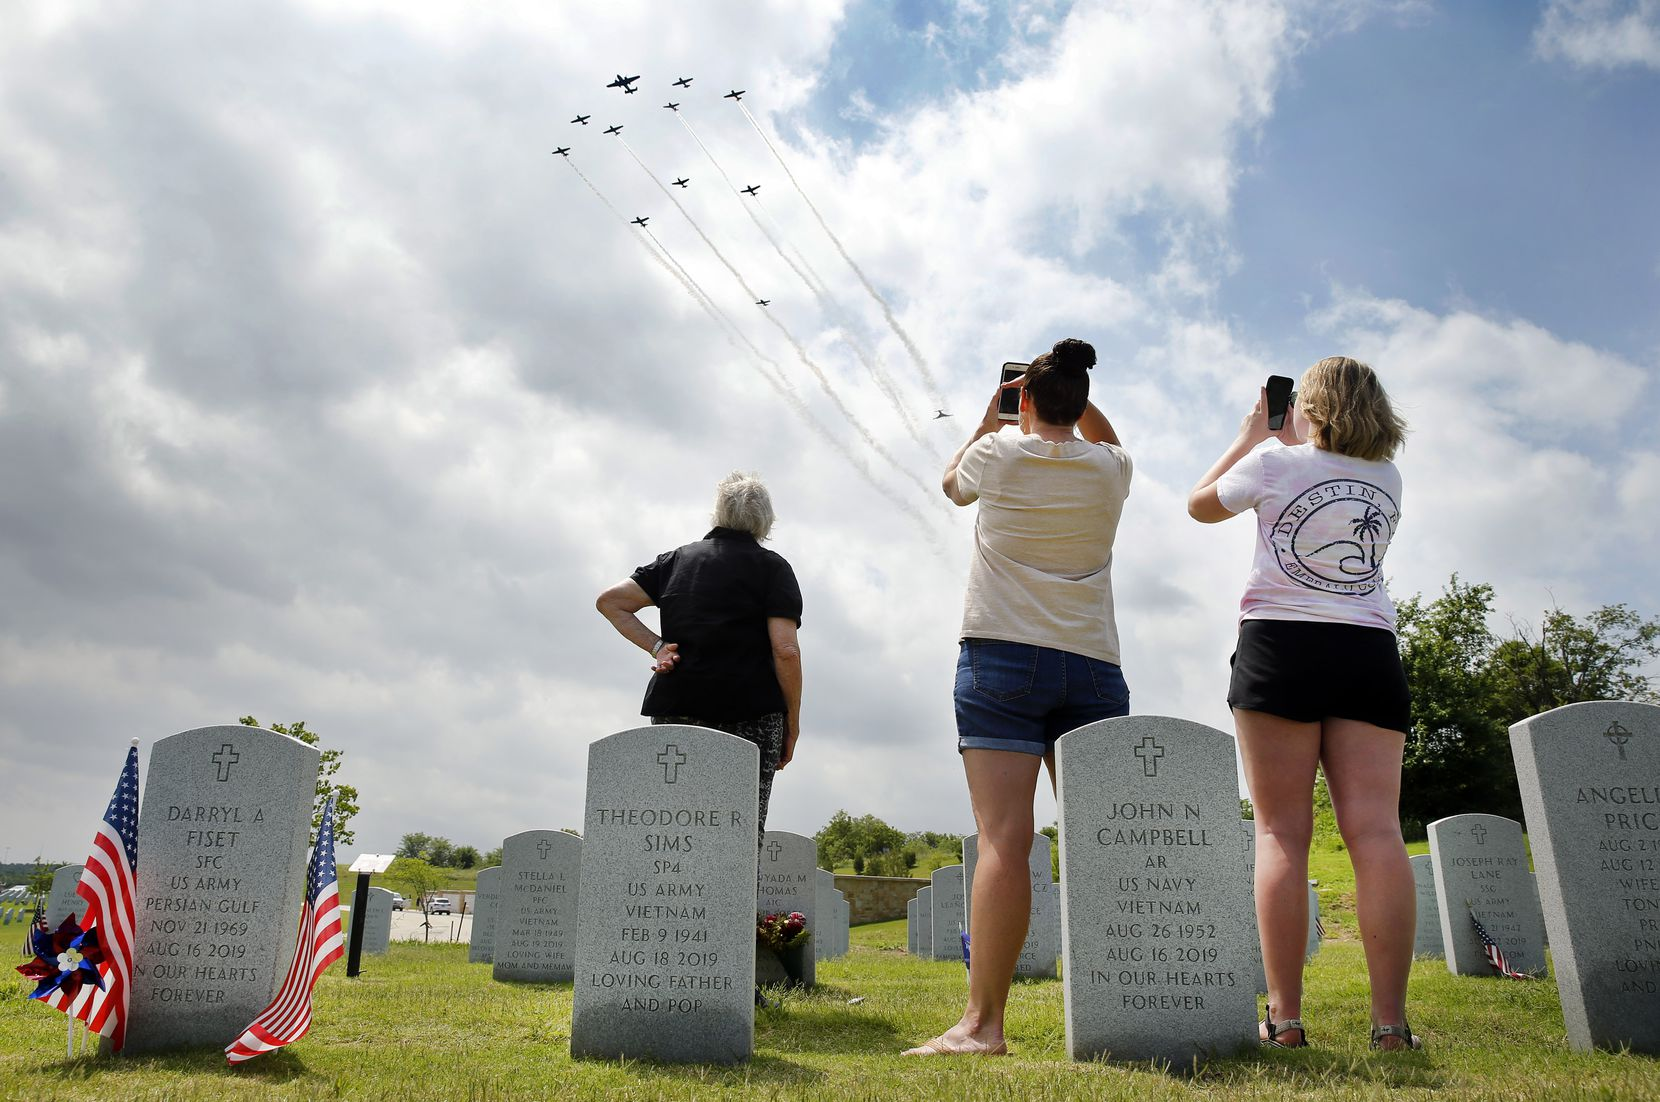 Three generations of the Wolniewicz family watched a group of old warplanes perform a flyover at Dallas-Fort Worth National Cemetery on May 22. From left are Carol Wolniewicz of Parker, daughter Krystal Kenney of Famersville and granddaughter Kandace Kenney, who came to visit the grave of Wolniewicz's husband, Vincent W. Wolniewicz, a retired Air Force officer who died last year.